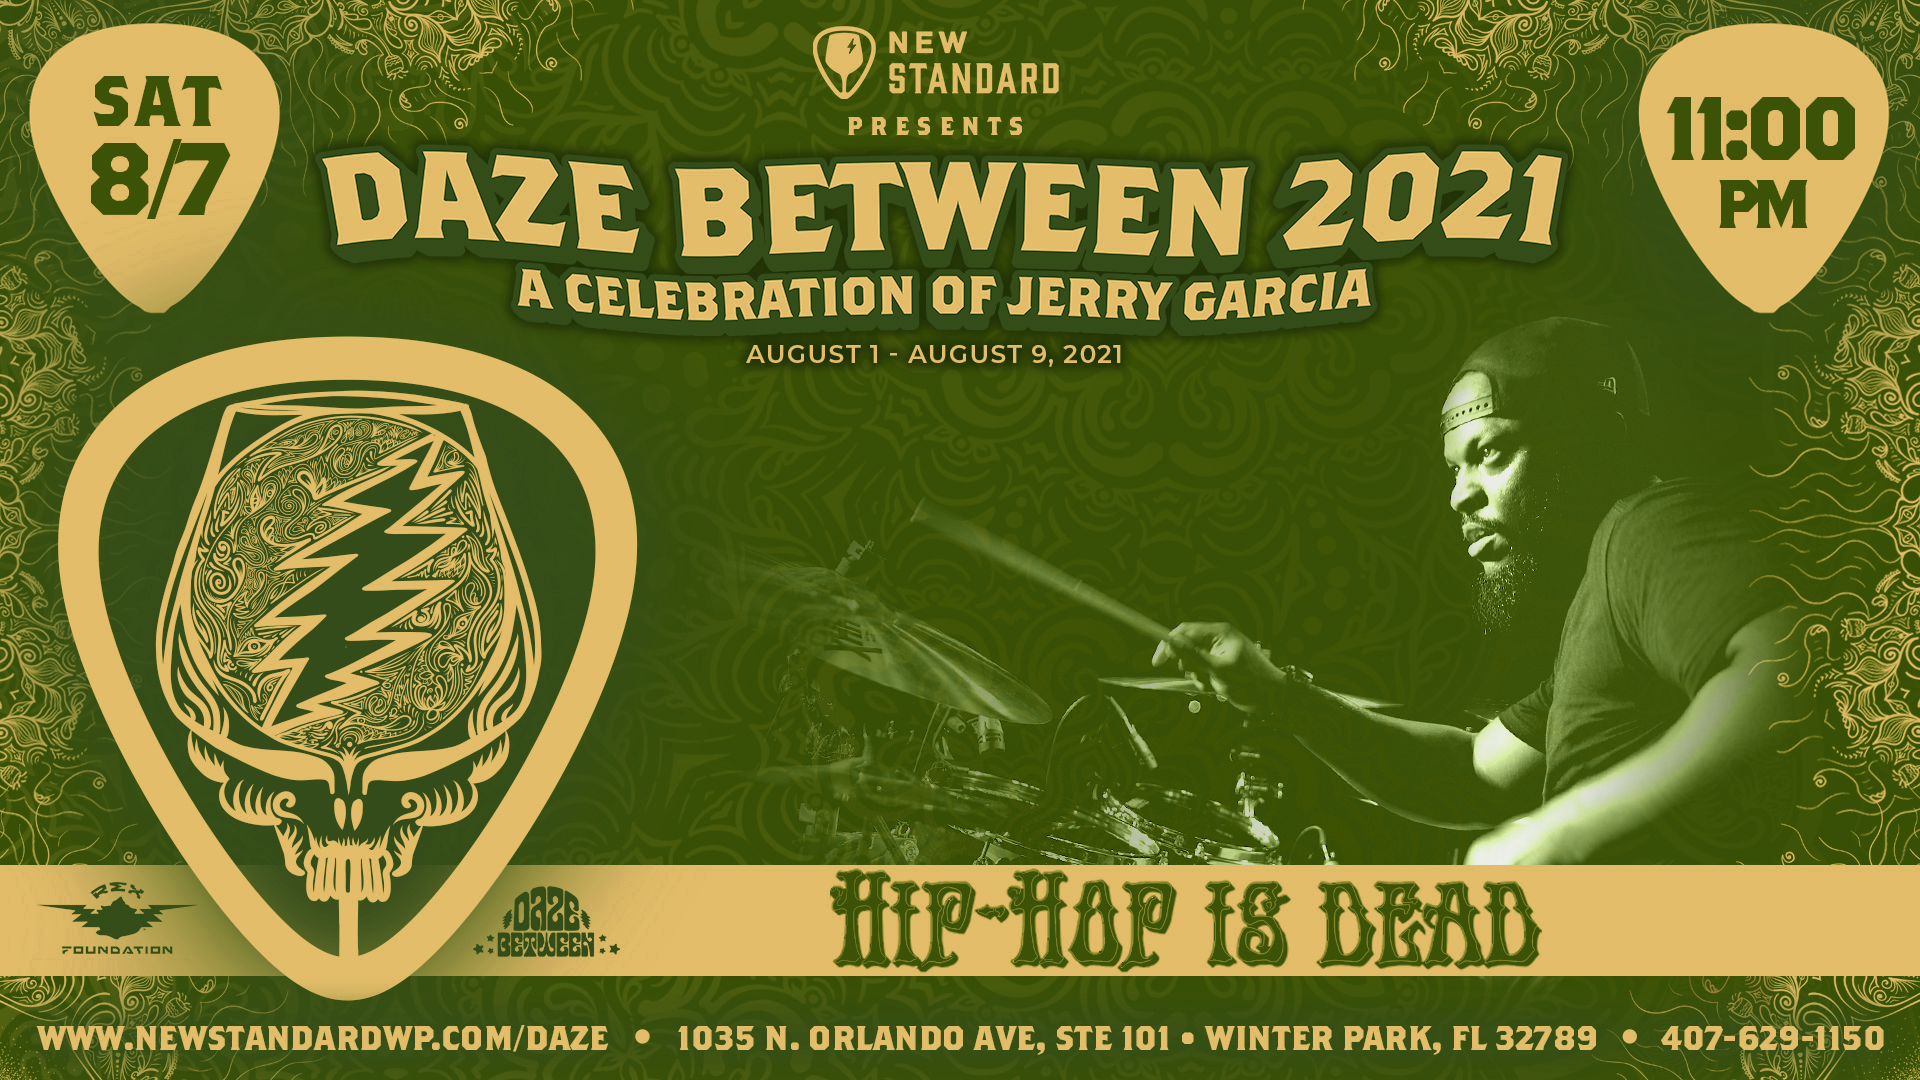 Photo for Hip-Hop Is Dead - Live at The New Standard - Daze Between 2021 on ViewStub